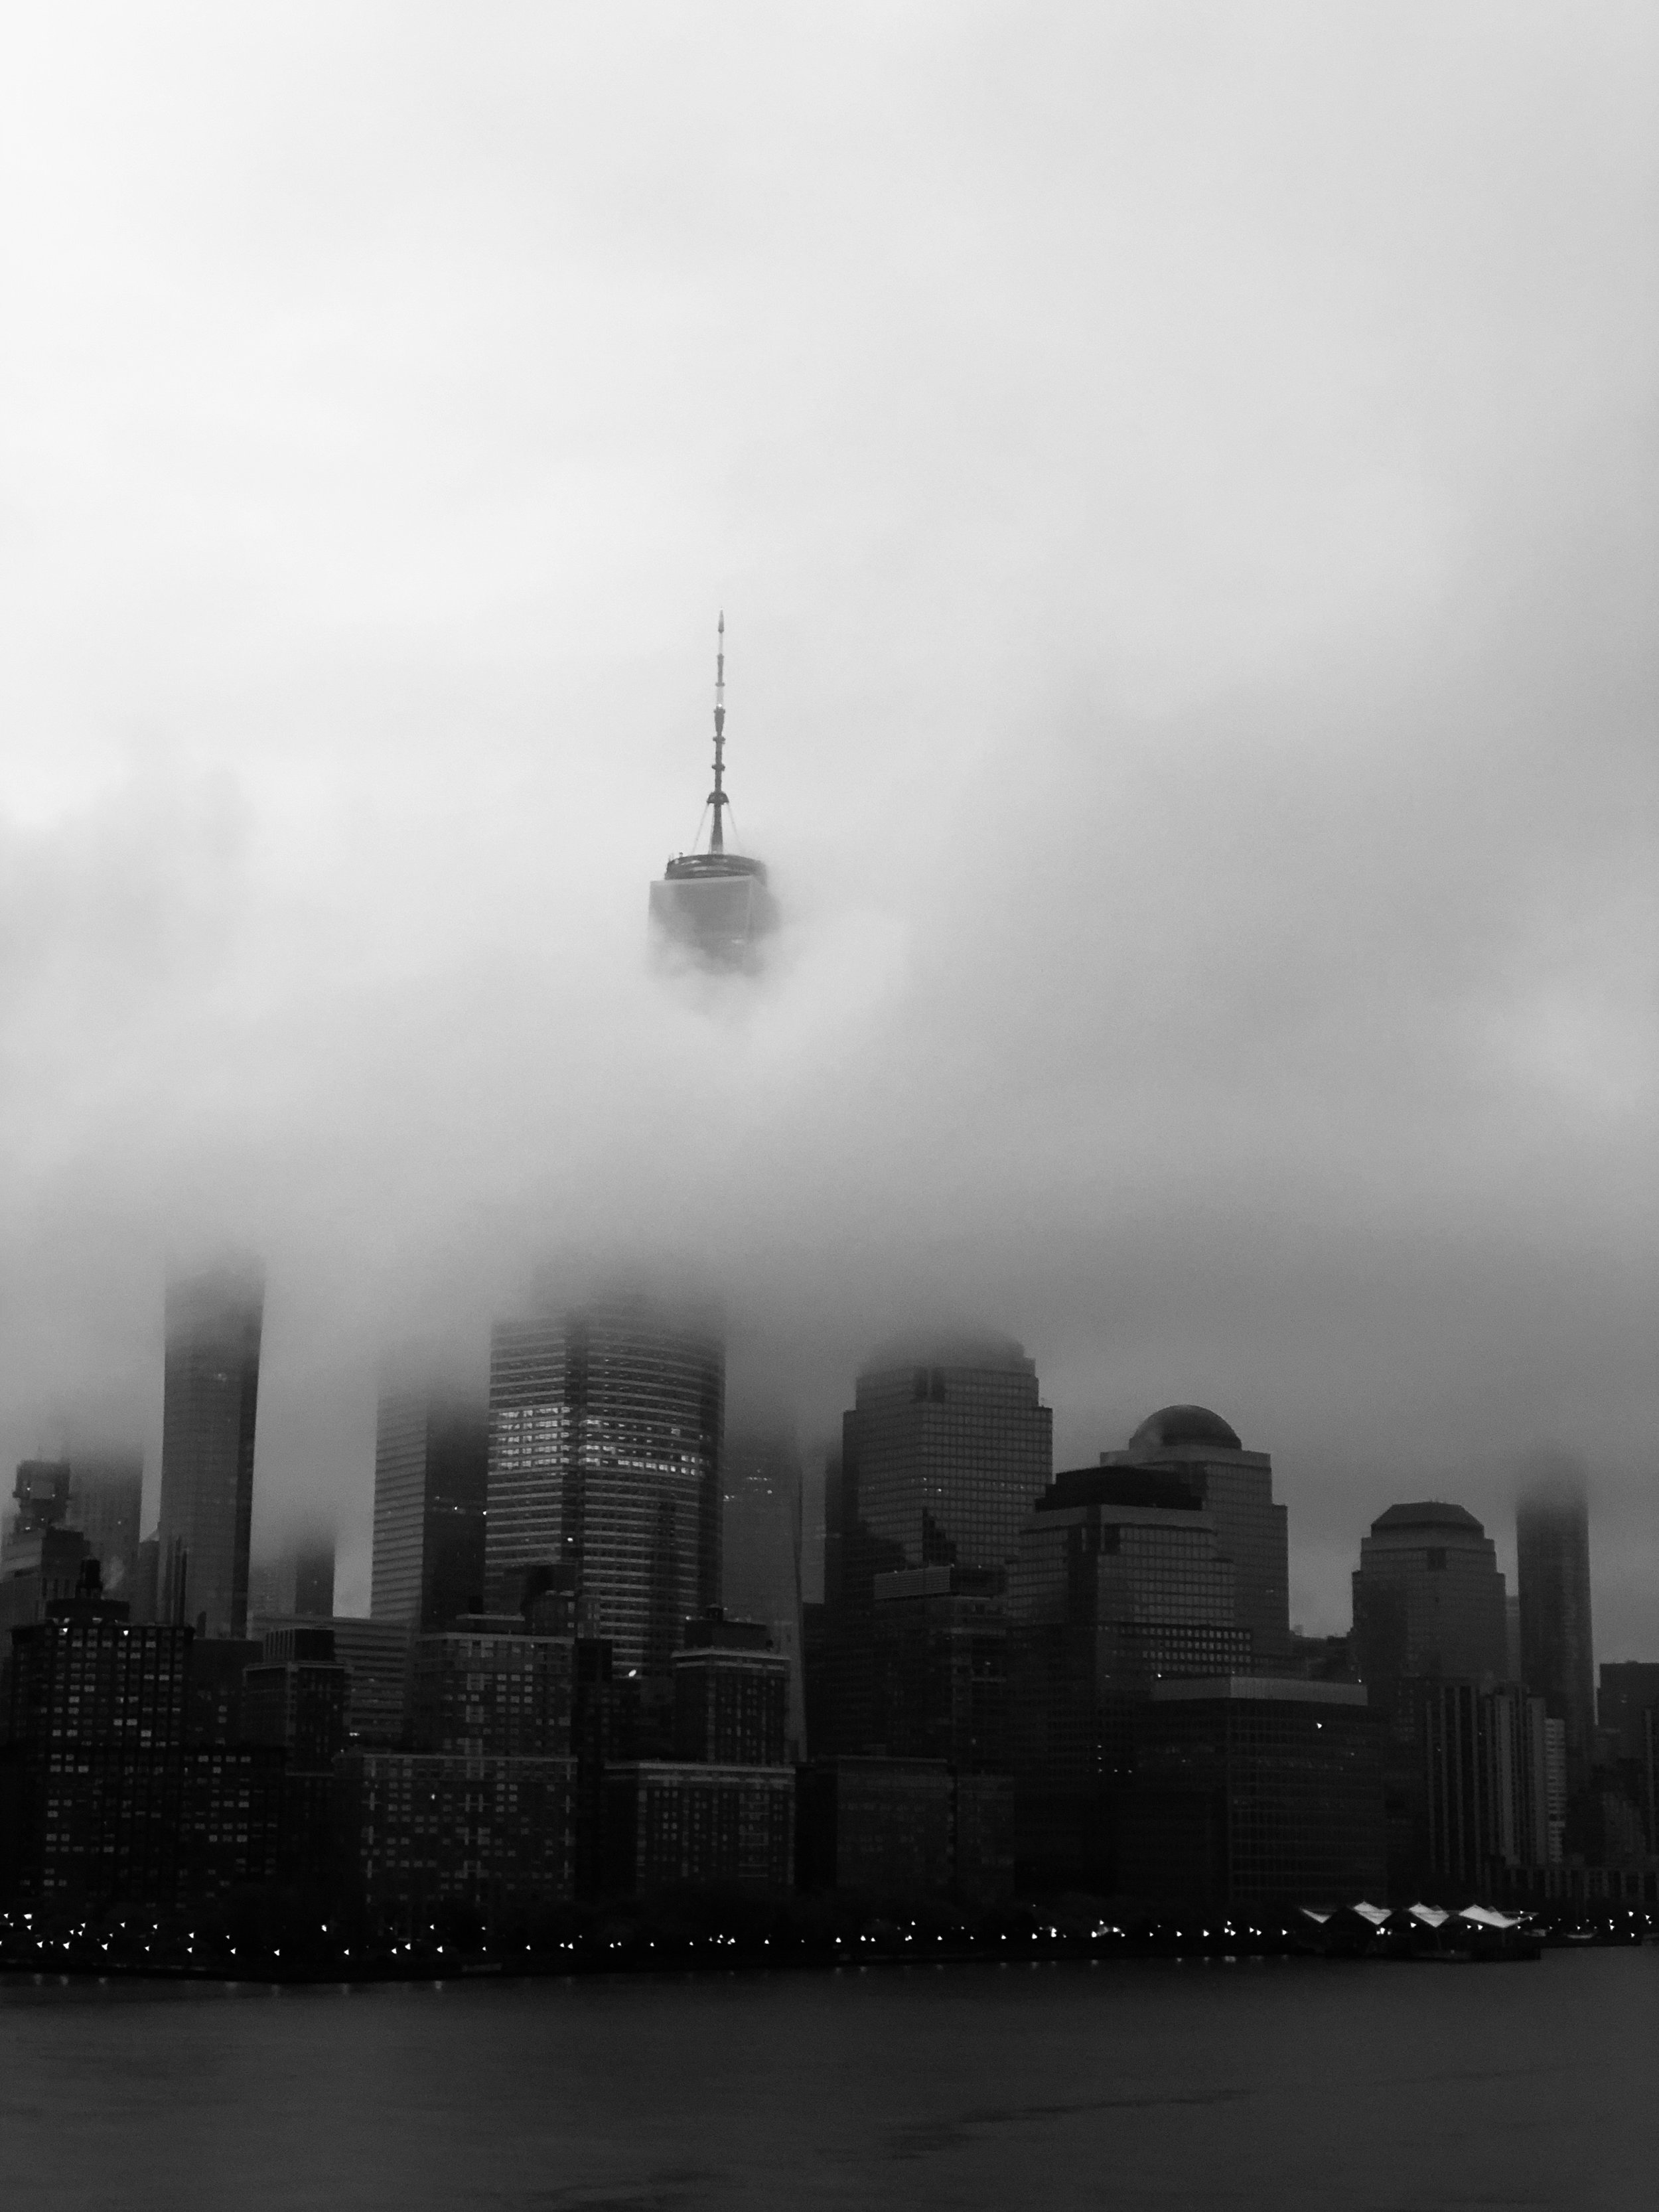 Then we returned to cold, rainy, foggy New York City. Sorry MY home town wasn't more hospitable.